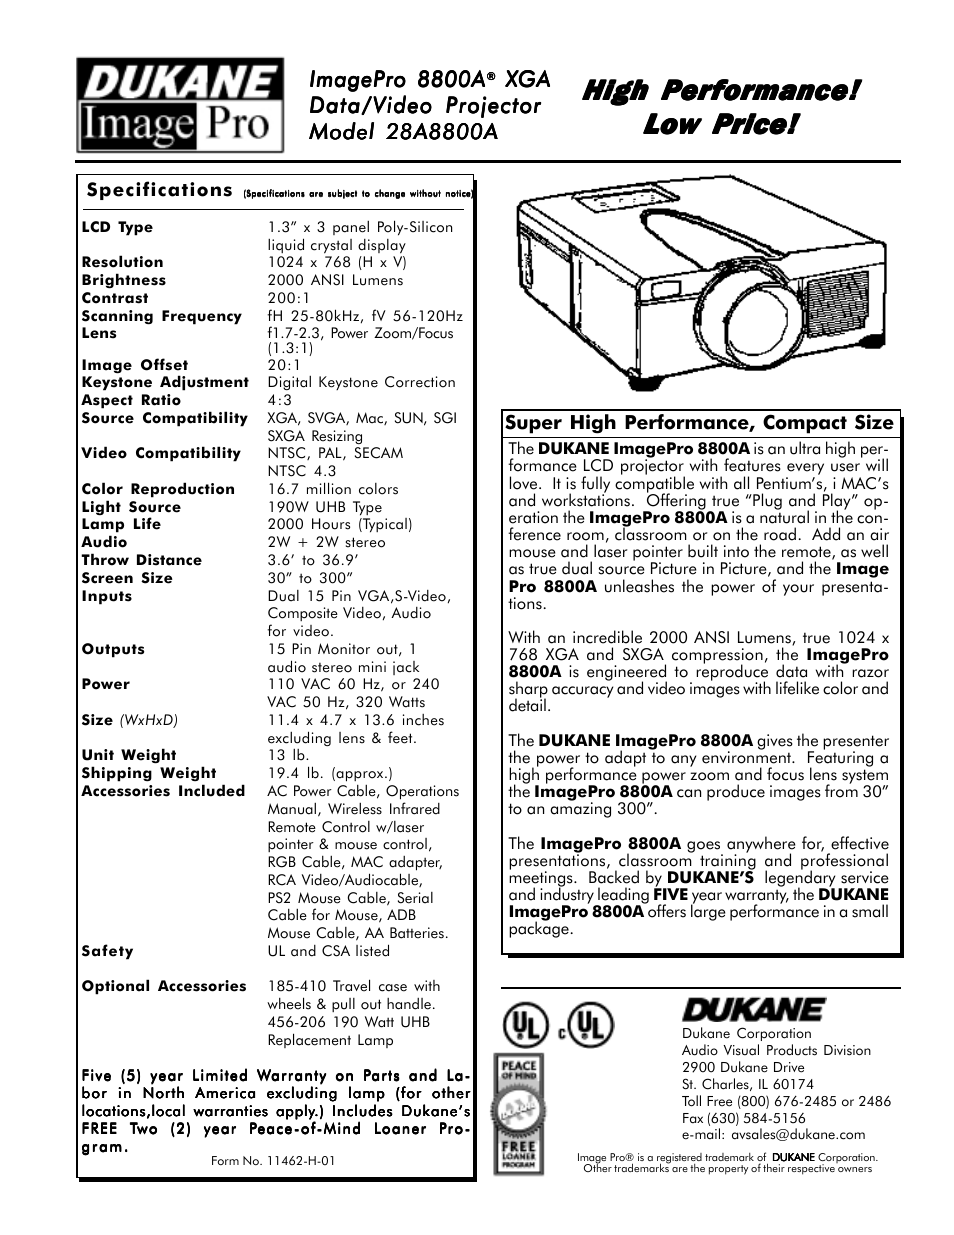 High performance, Imagepro 8800a, Audio visual products | Dukane ImagePro  8800A User Manual | Page 2 / 2